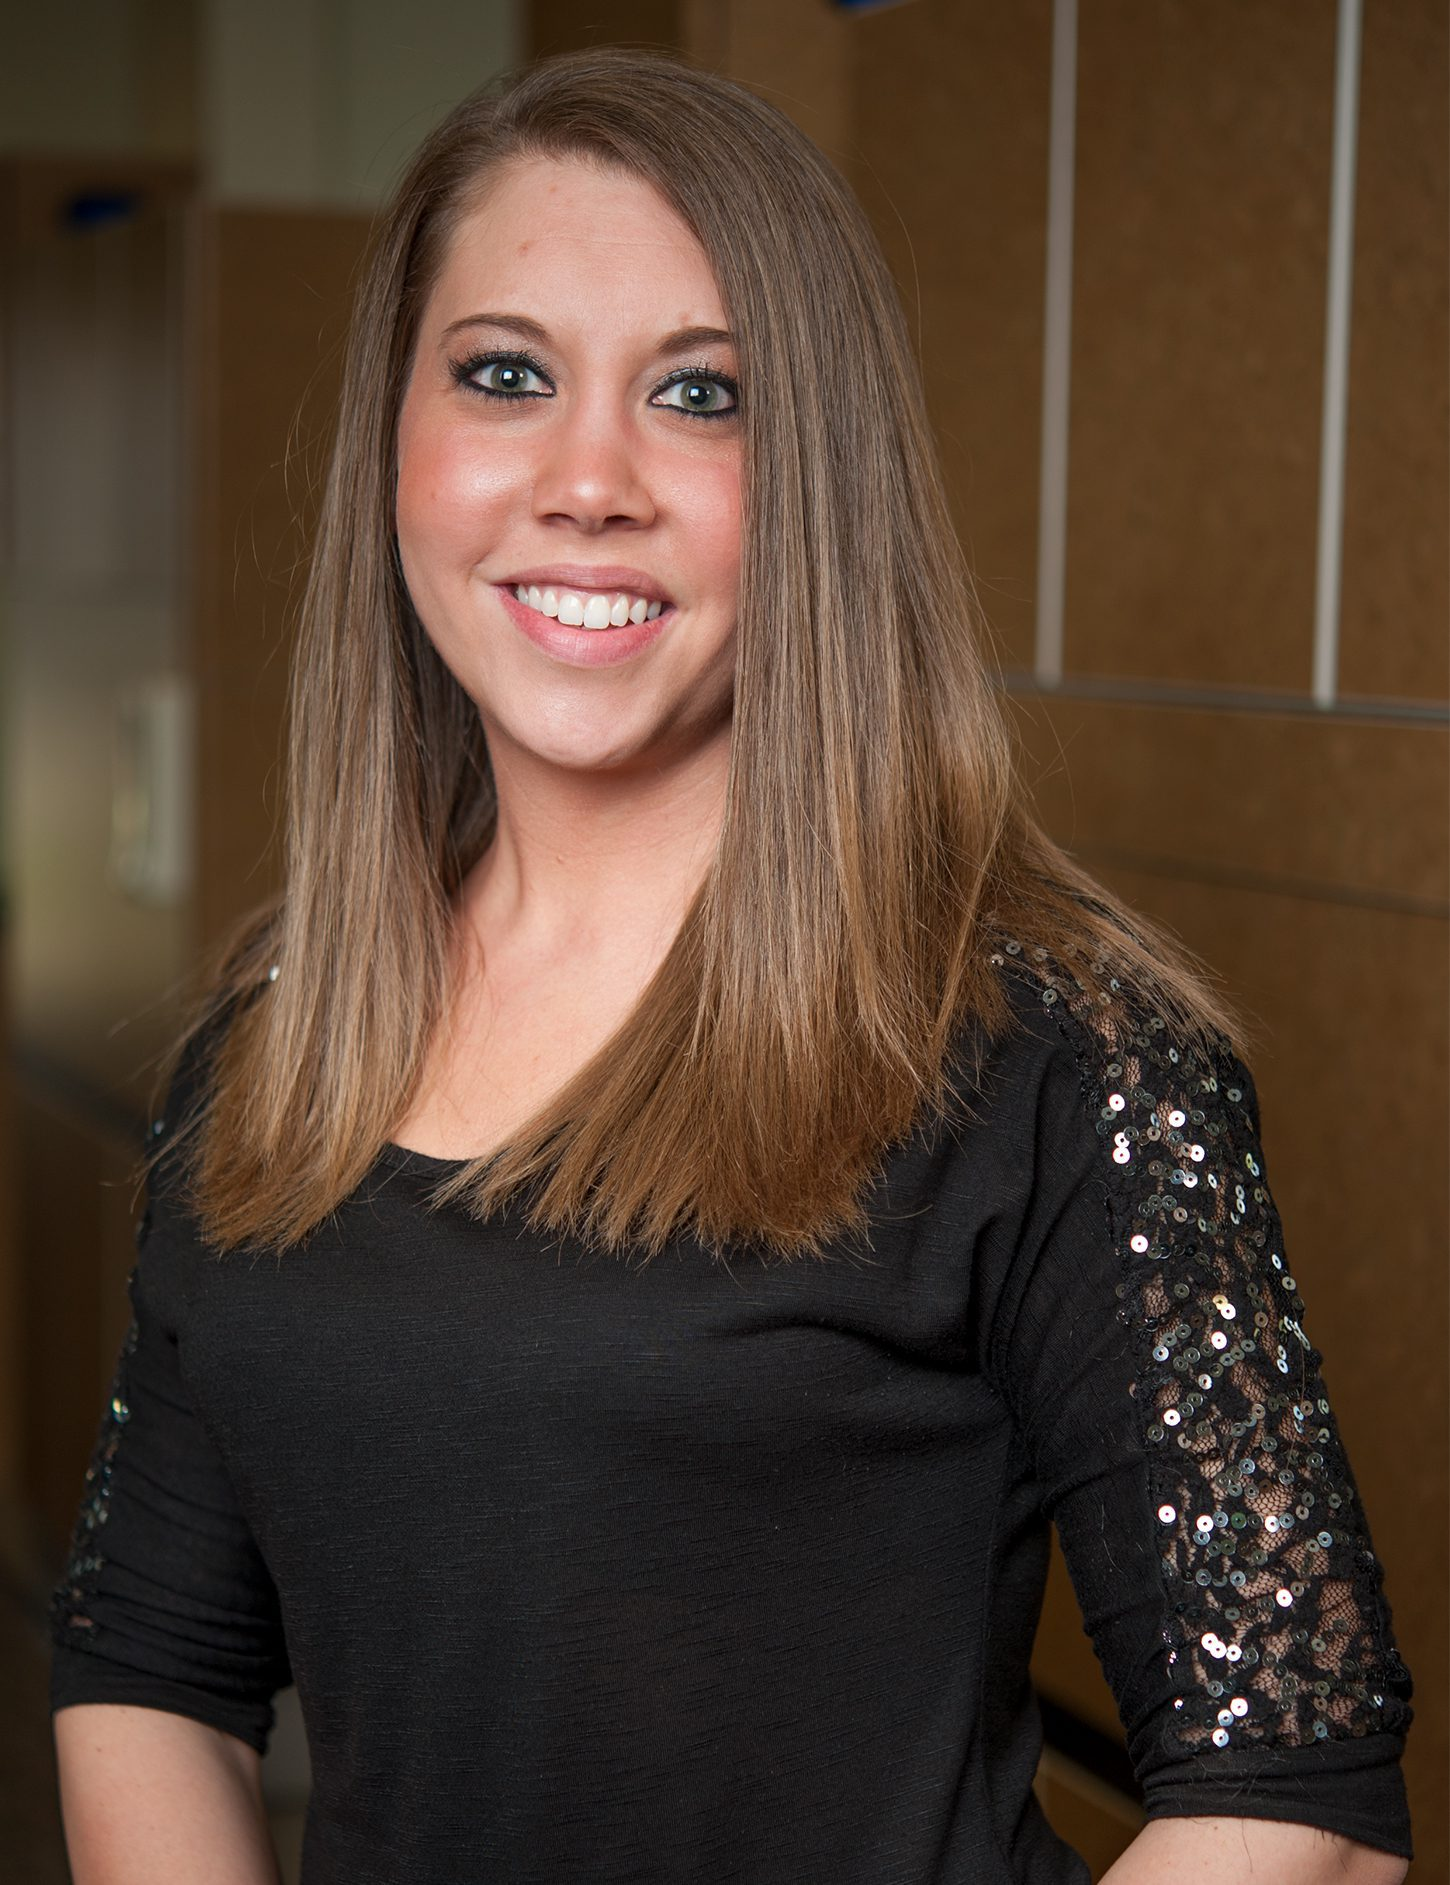 Makayla from Advance Dental Care of Anderson posing for professional headshot